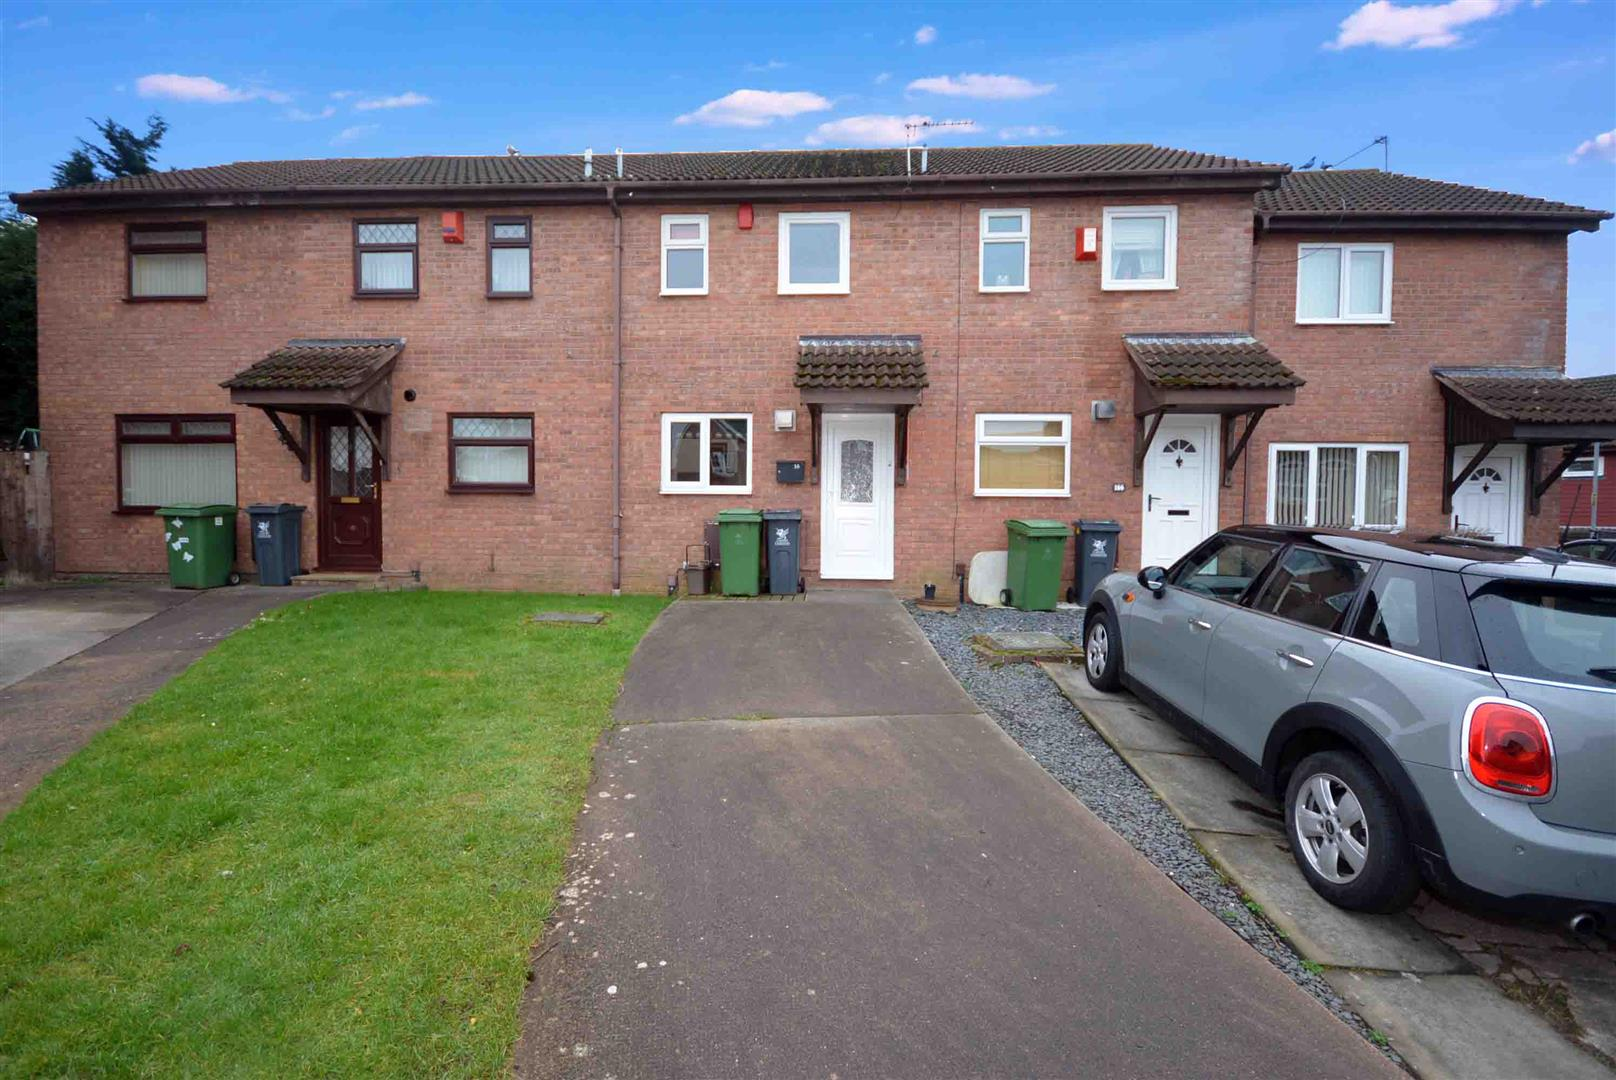 2 bed terraced house for sale in Bryn Heulog, Cardiff  - Property Image 1